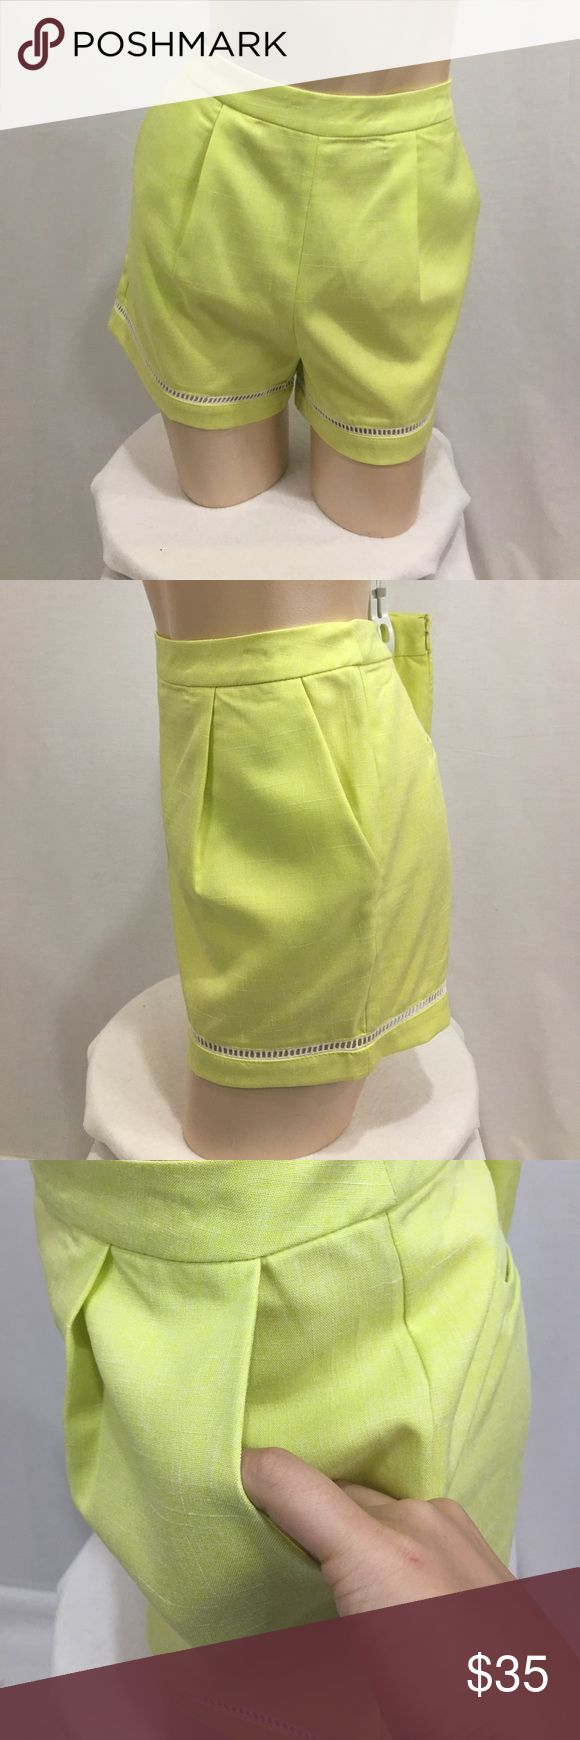 NWOT lemon lime yellow shorts Cutout crochet detailing along edge. Faux back pocket. And back zipper. Front pockets. Size medium. New without tags. Never worn. Yellow/green color. Measurements are approx in inches laying flat. W-15 length-13.5 rise-11.5 inseam-3  🌹no trades 🌹discounts on bundles of 2+  🌹1000 items listed, take a peak!  🌹suggested user, posh compliant:) Love Riche Shorts